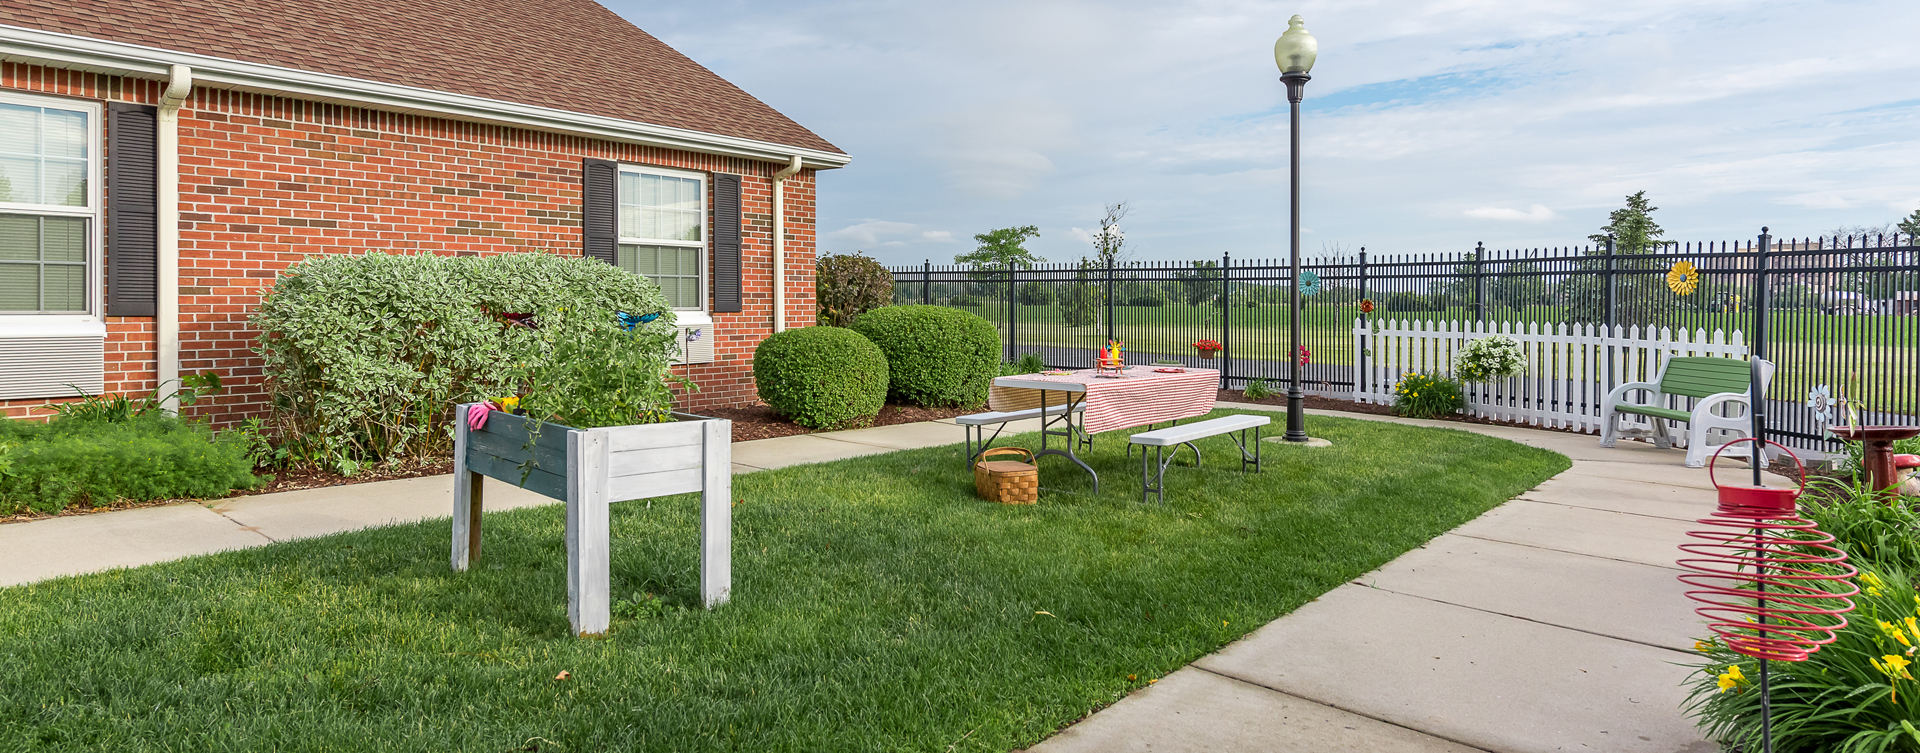 A single entrance courtyard gives residents with dementia the opportunity to be safe outside at Bickford of Saginaw Township